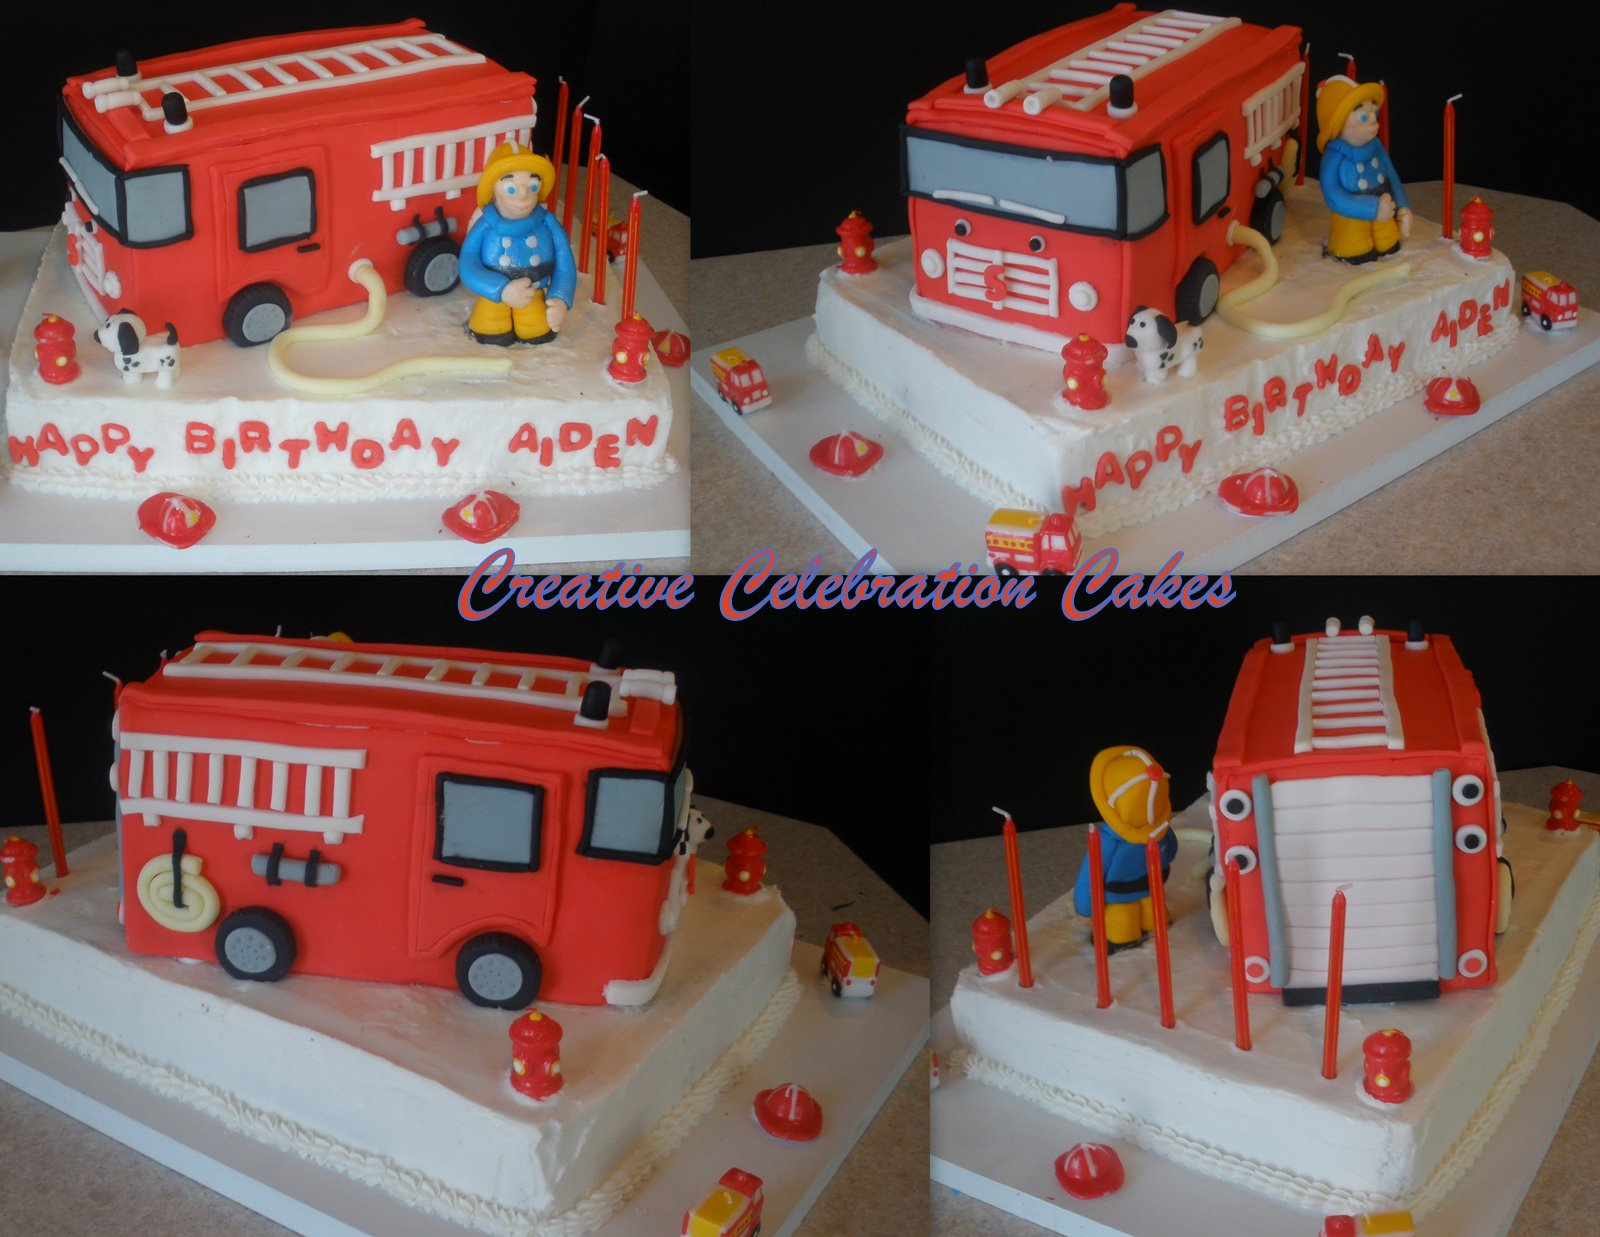 Perfectly Magical Events Fireman Birthday Cake